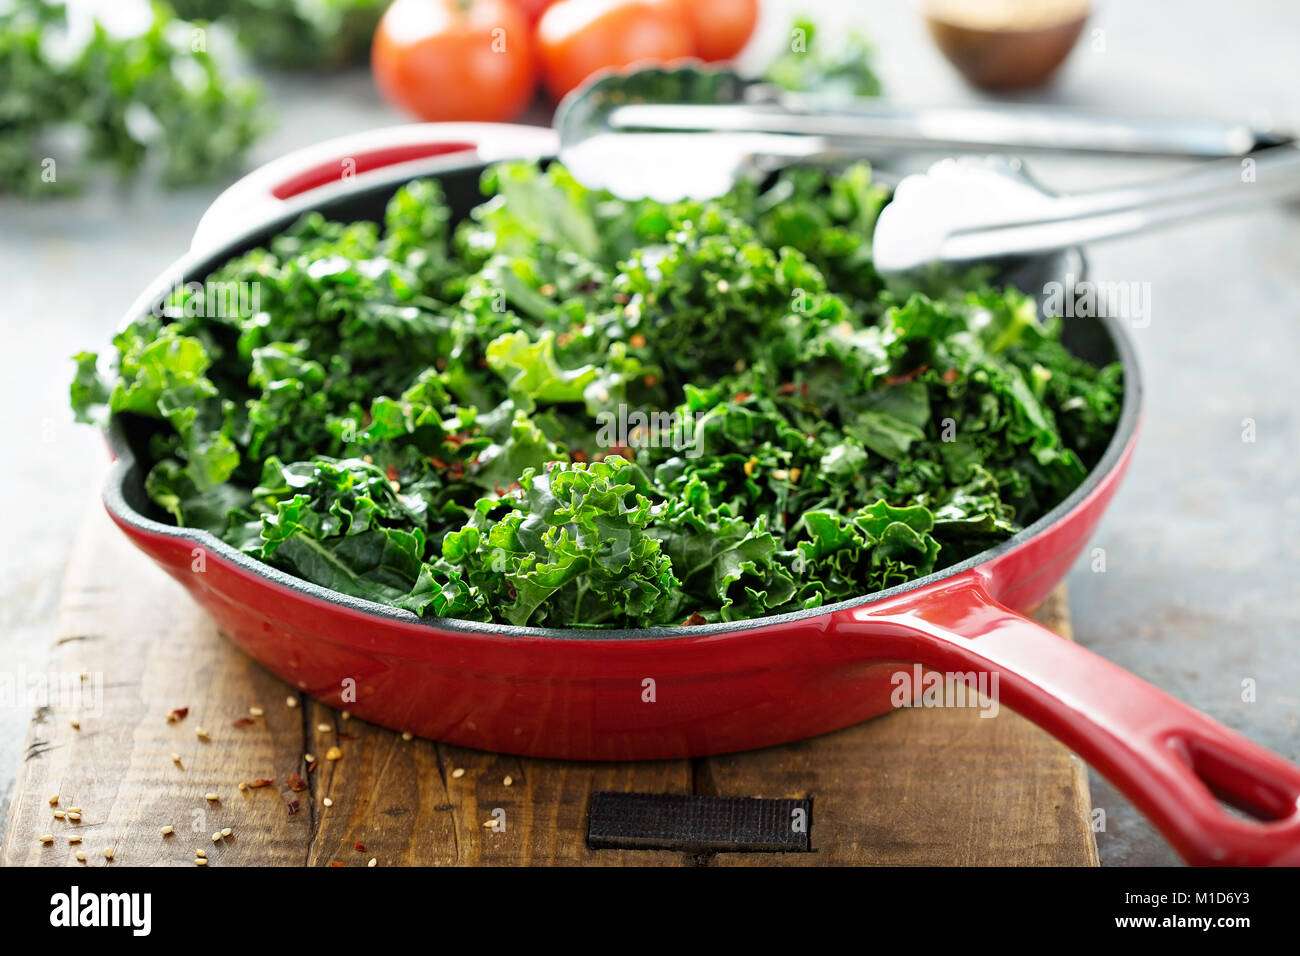 Sauteed kale with chili flakes - Stock Image